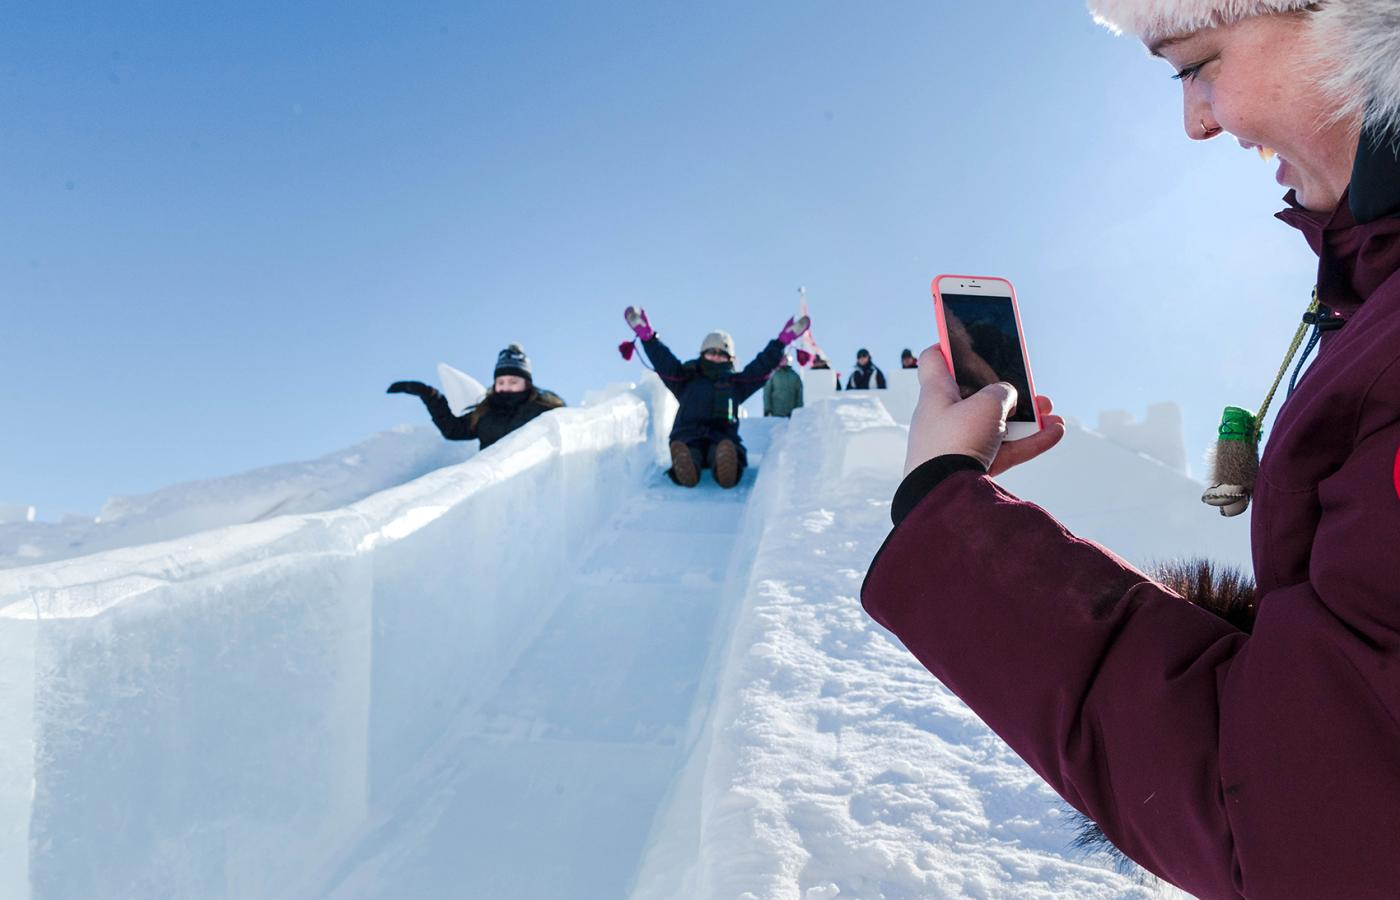 One of the famous ice slides at the Snowking Castle in Yellowknife